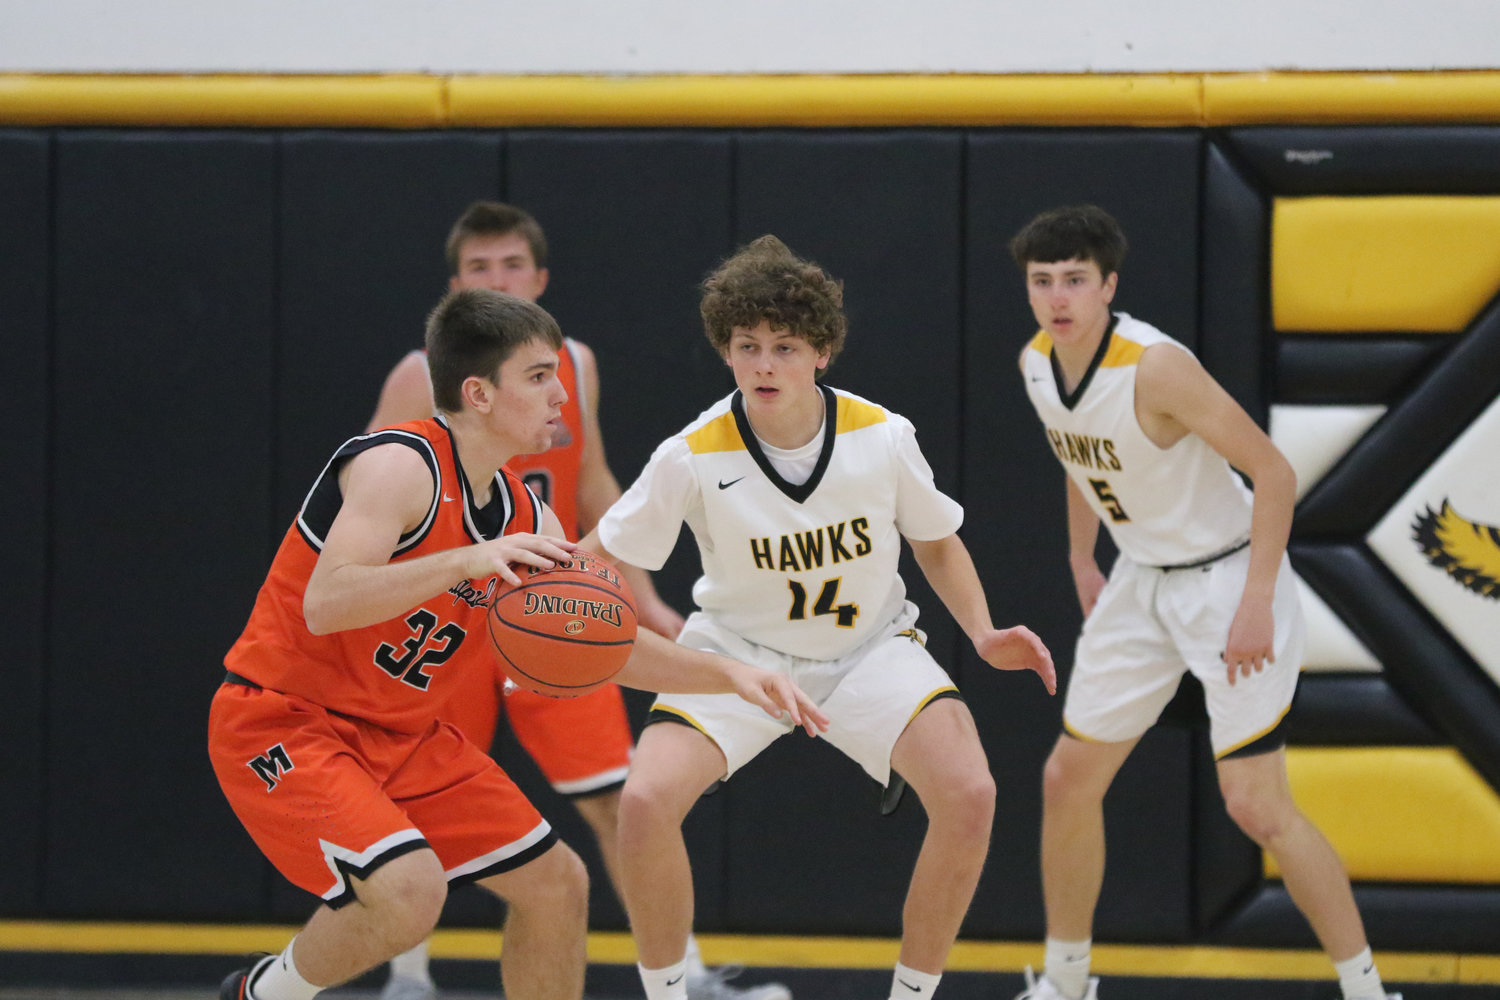 Mid-Prairie guard Jackson Pennington (14) defends Mediapolis' Ben Egan during the first quarter of a scrimmage in Wellman on Saturday, November 21.